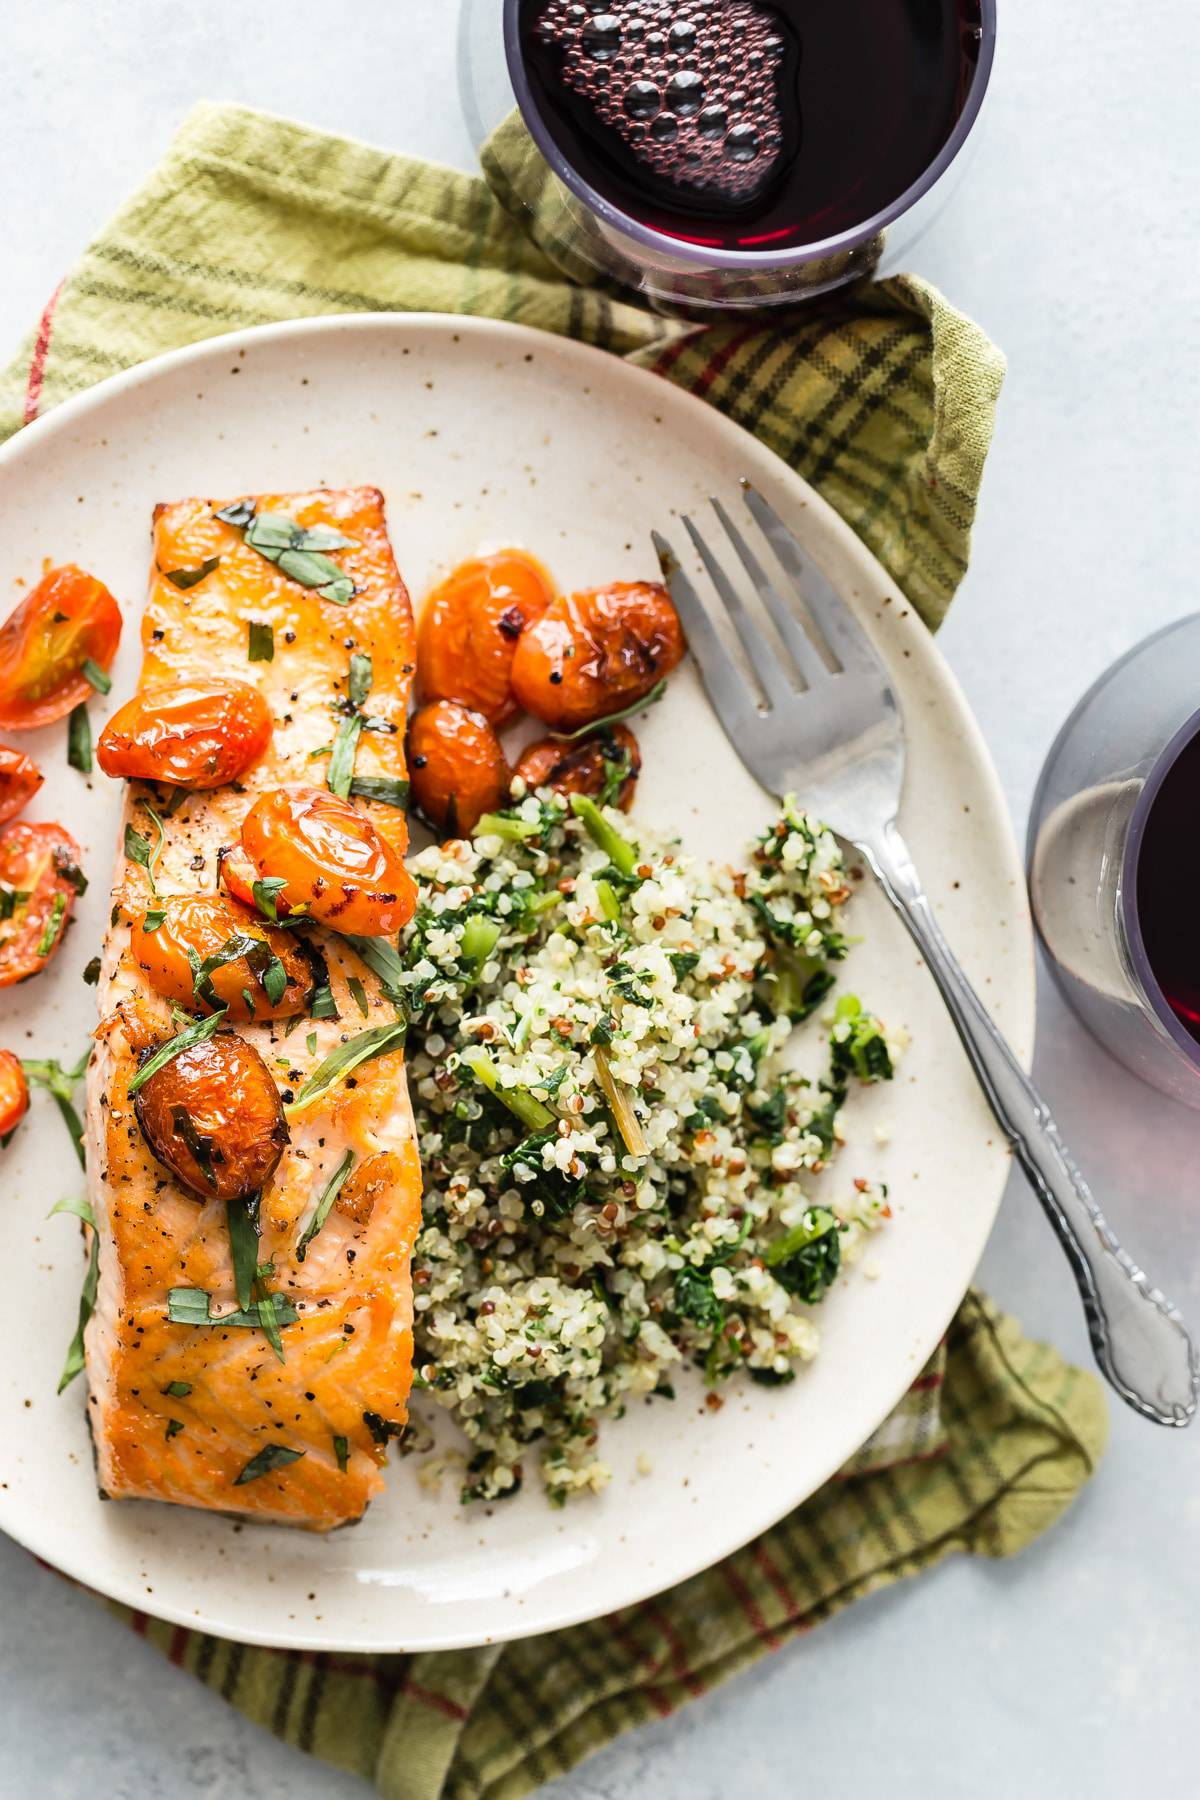 Yummy Seared Salmon, The Easiest Way To Cook Salmon And The Tastiest!